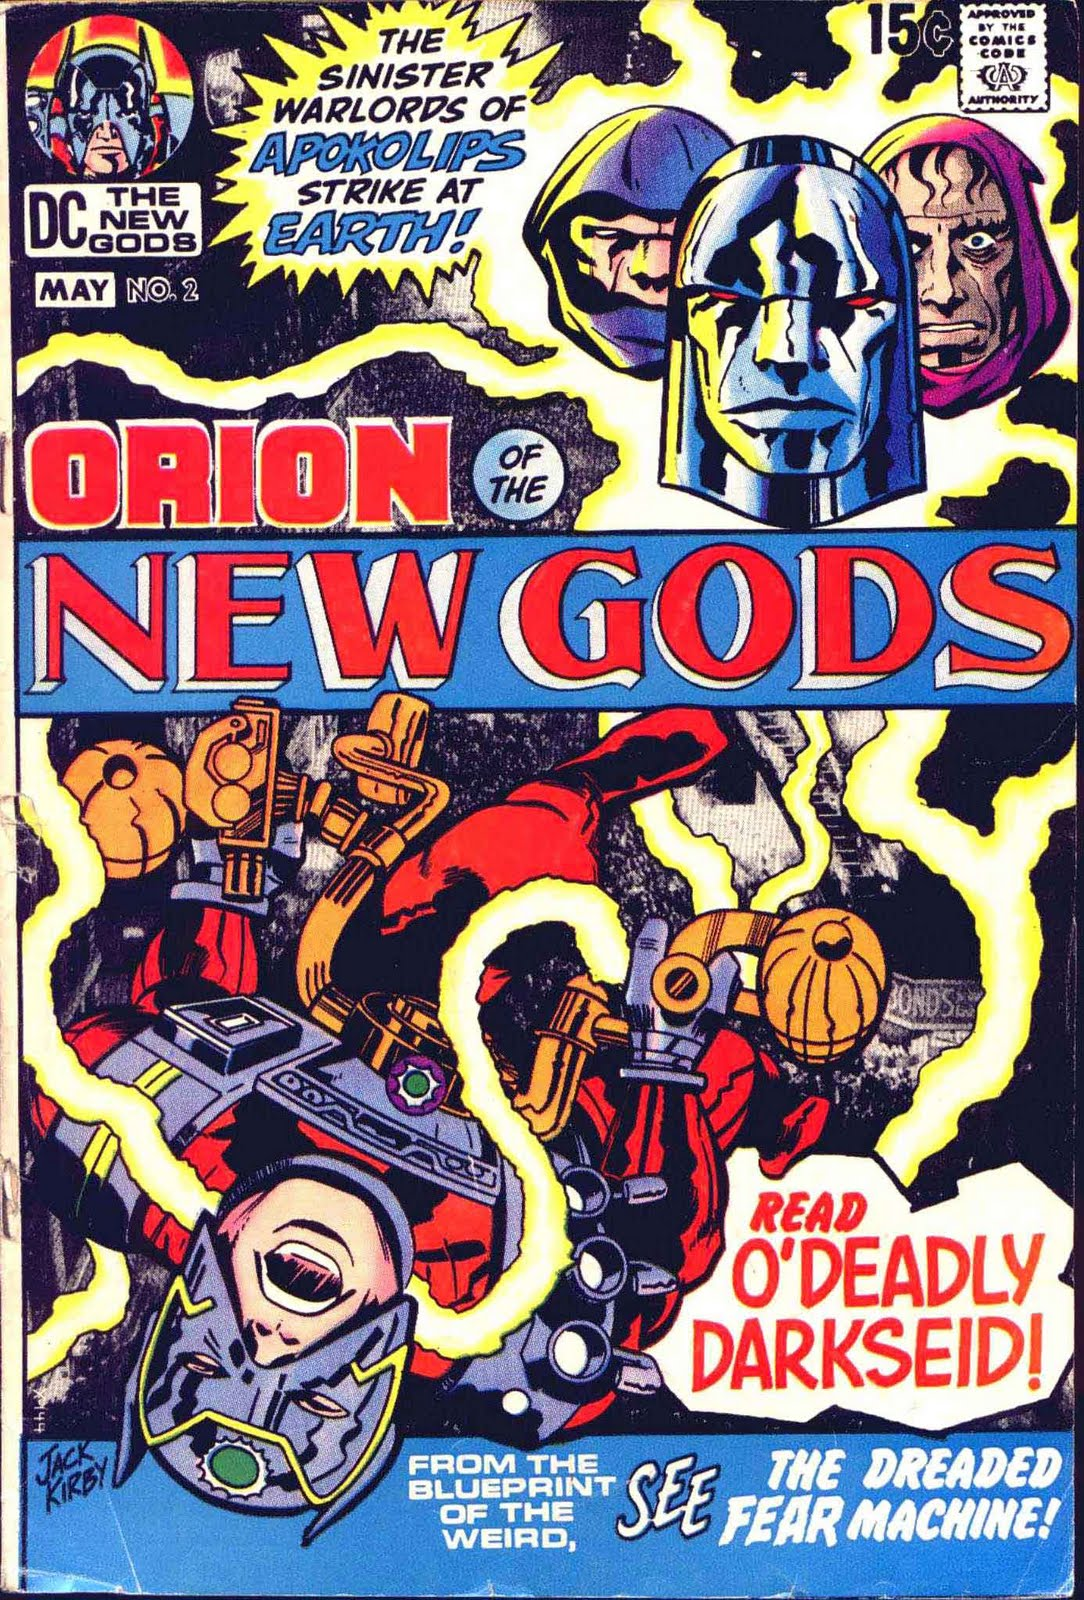 New Gods v1 #2 dc bronze age comic book cover art by Jack Kirby